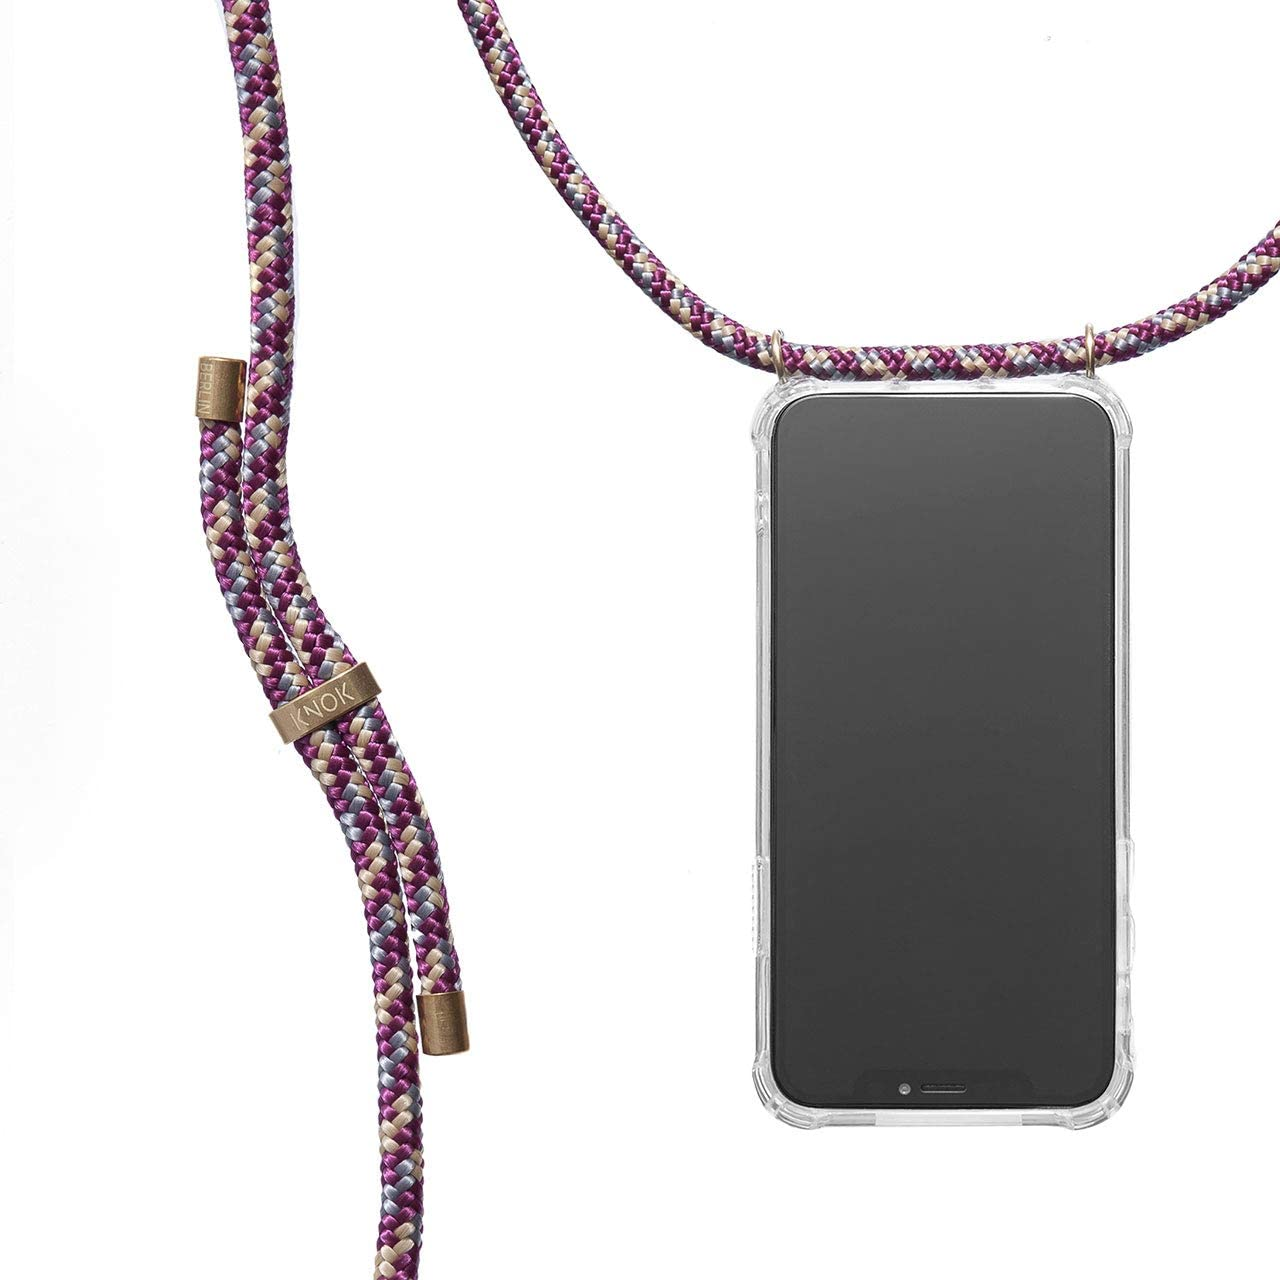 KNOK Crossbody Phone Case for iPhone 11 Pro - Mobile Neck Holder Phone Case with Strap - Lanyard Phone Holder - Phone Necklace (iPhone 11 Pro, Bordeaux)